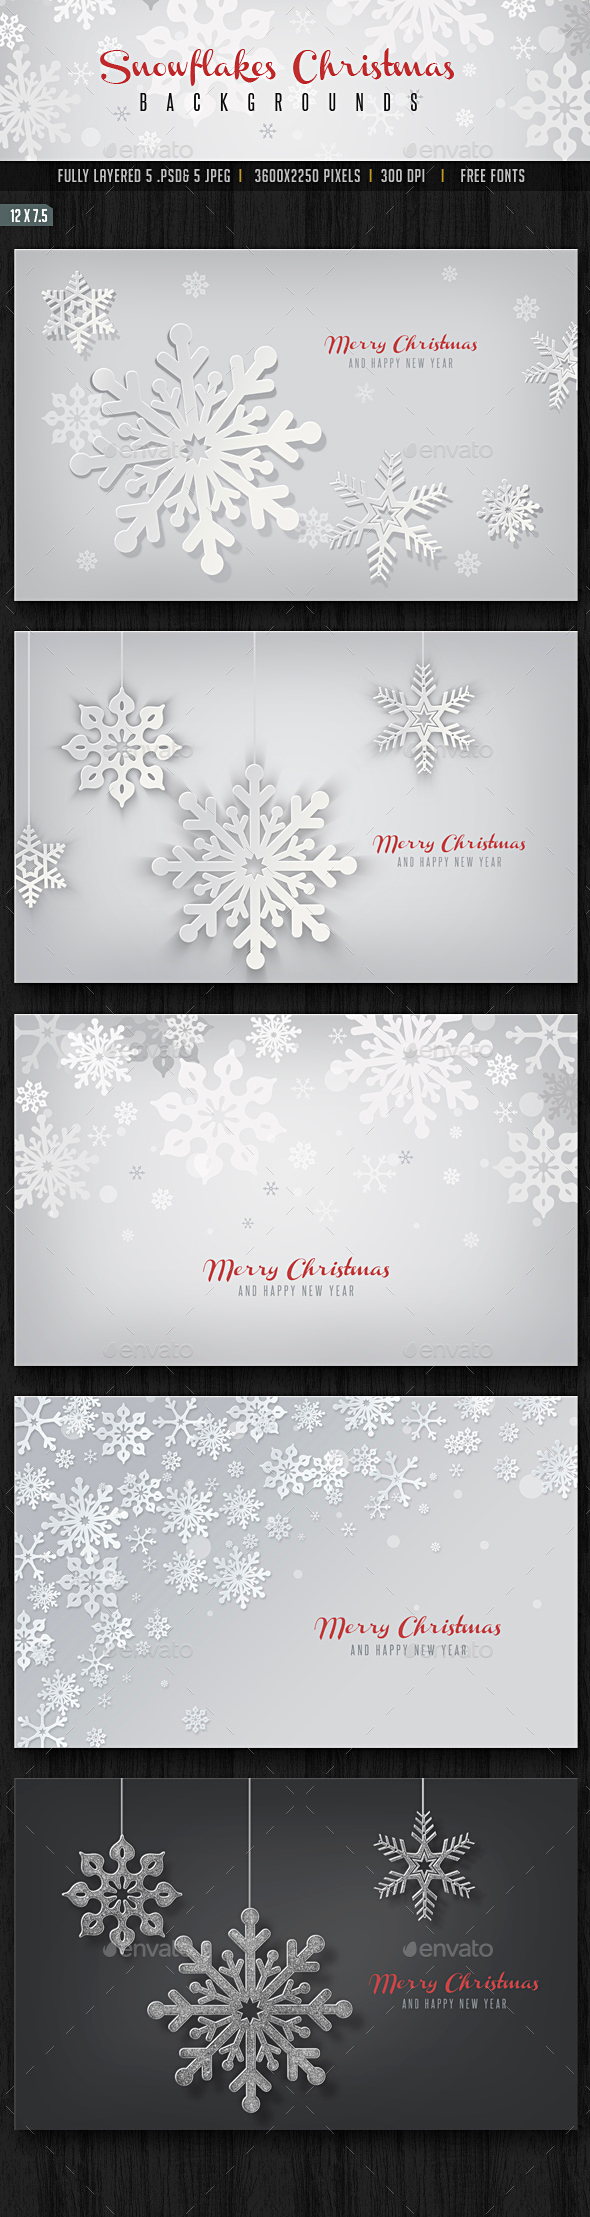 Snowflakes Christmas Backgrounds - Backgrounds Graphics